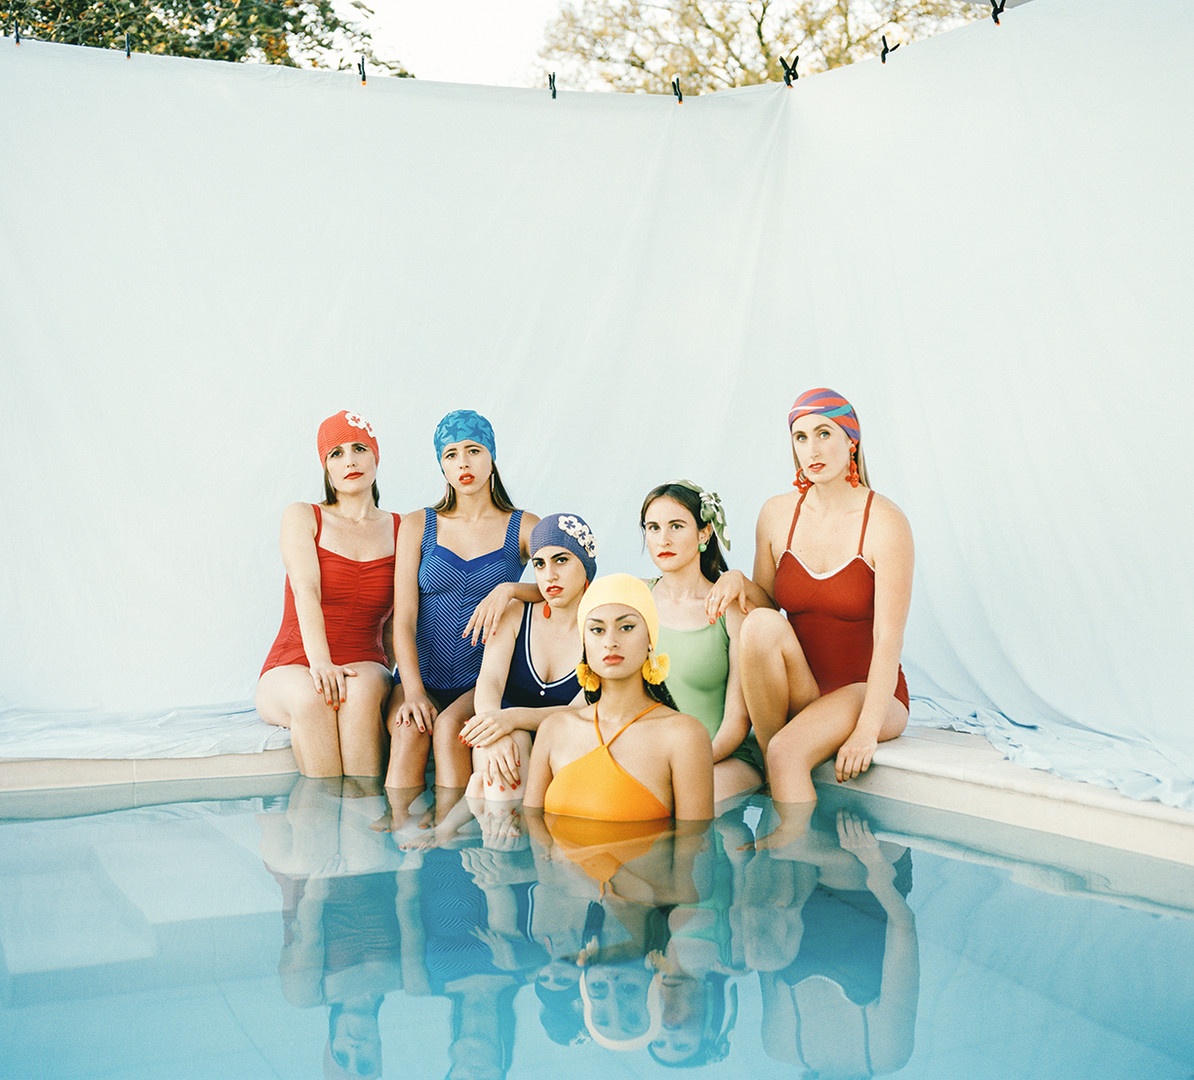 From the series 'Women in Bathing Suits'.